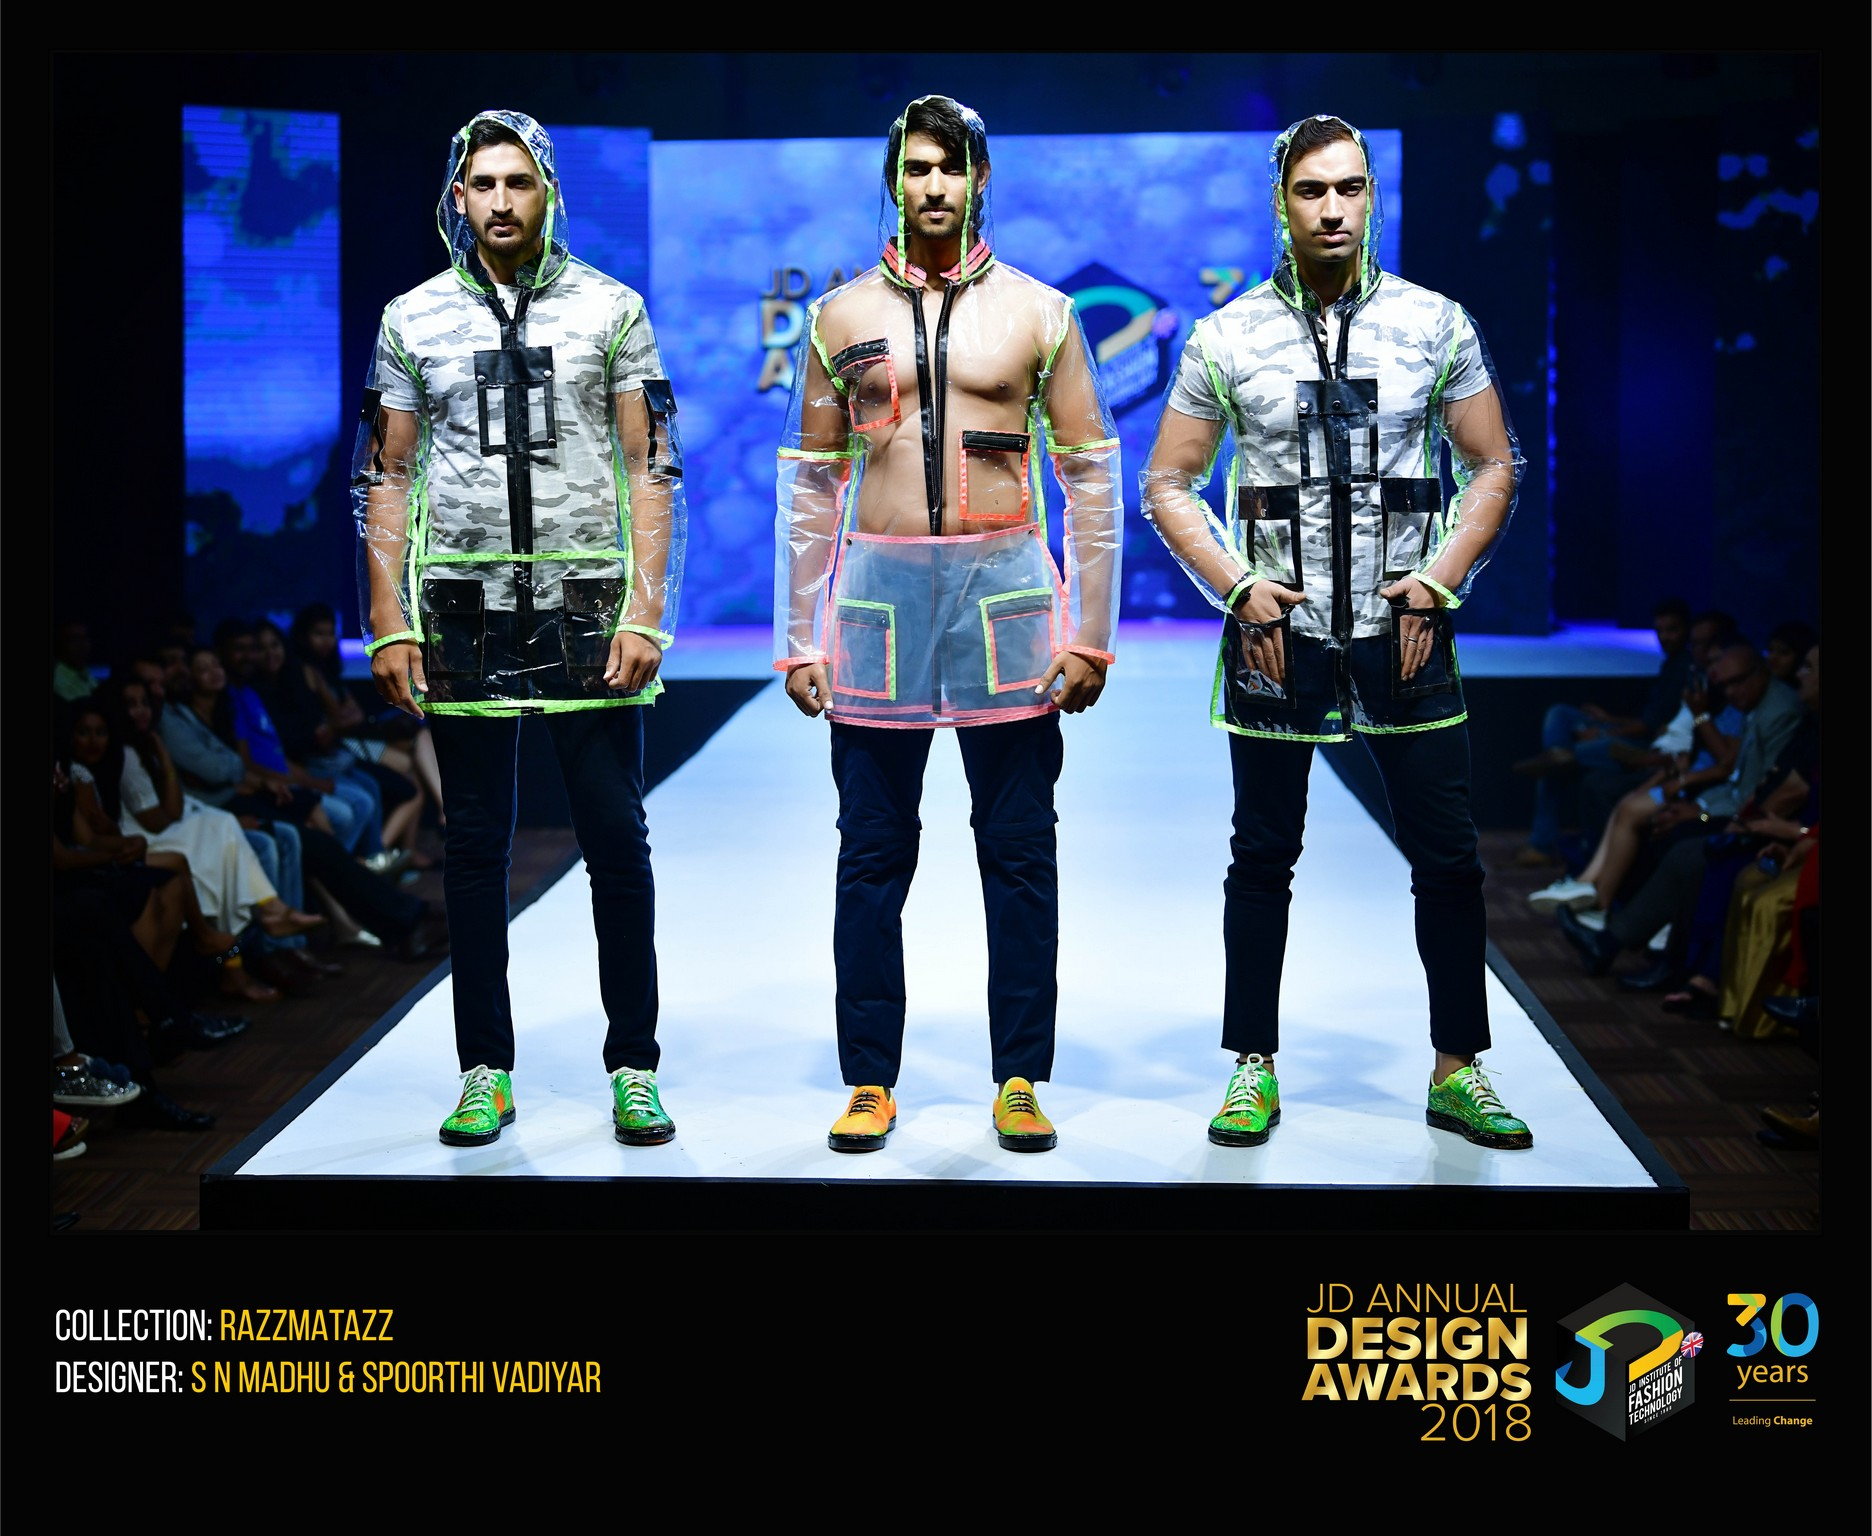 Razzmatazz – Change – JD Annual Design Awards 2018 | Designer: Madhu and Spoorthi | Photography : Jerin Nath (@jerin_nath) razzmatazz – change – jd annual design awards 2018 - RAZZMATAZZ 5 - Razzmatazz – Change – JD Annual Design Awards 2018